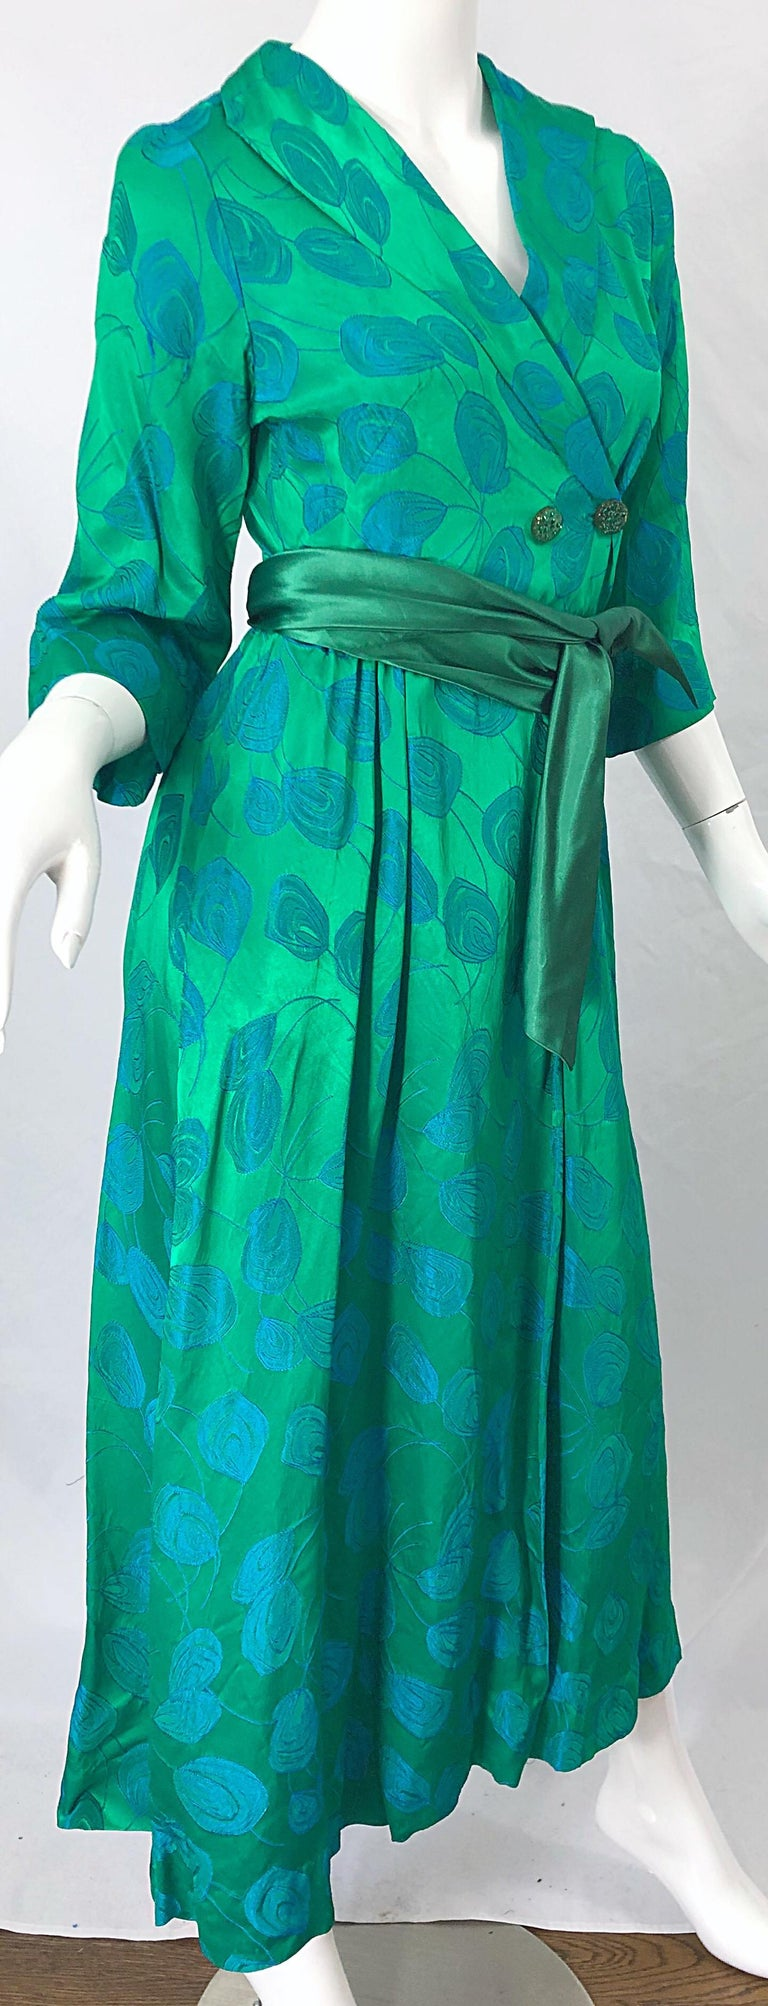 1950s Kelly Green + Blue Flower Print Rayon Rhinestone Vintage 50s Wrap Dress For Sale 4